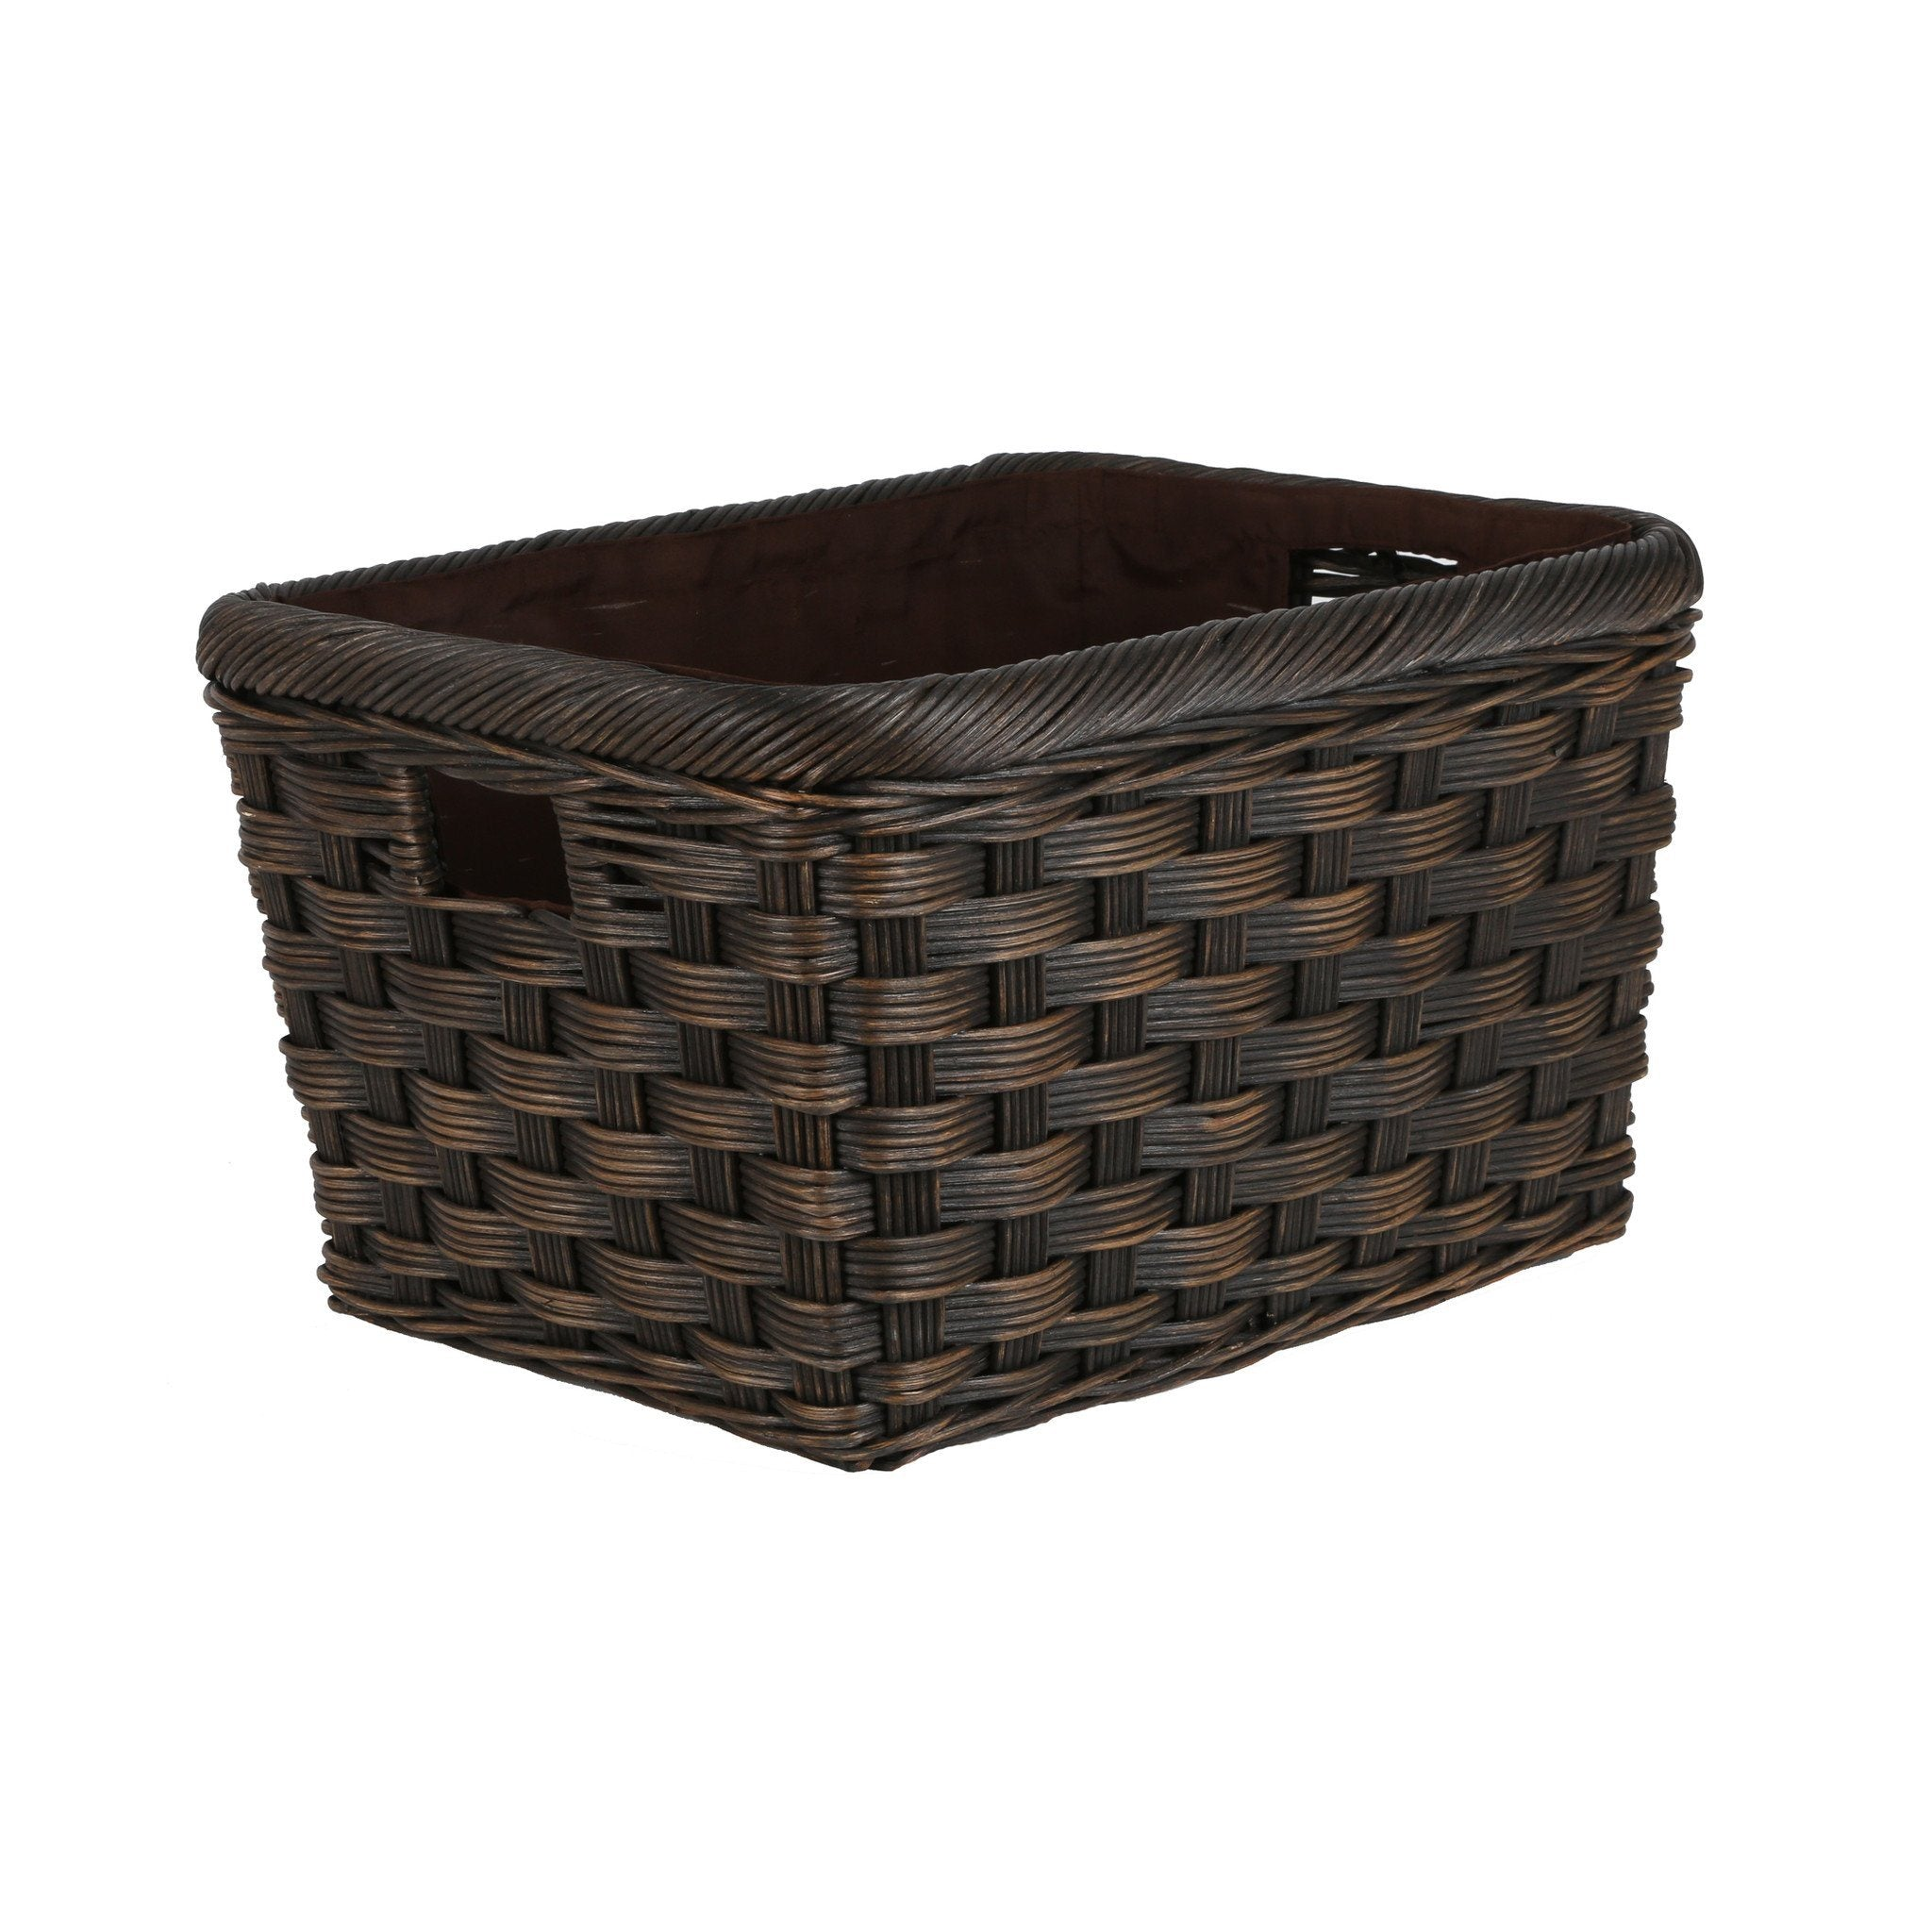 Charming ... Jumbo Wicker Storage Basket In Antique Walnut Brown Size M From The  Basket Lady ...